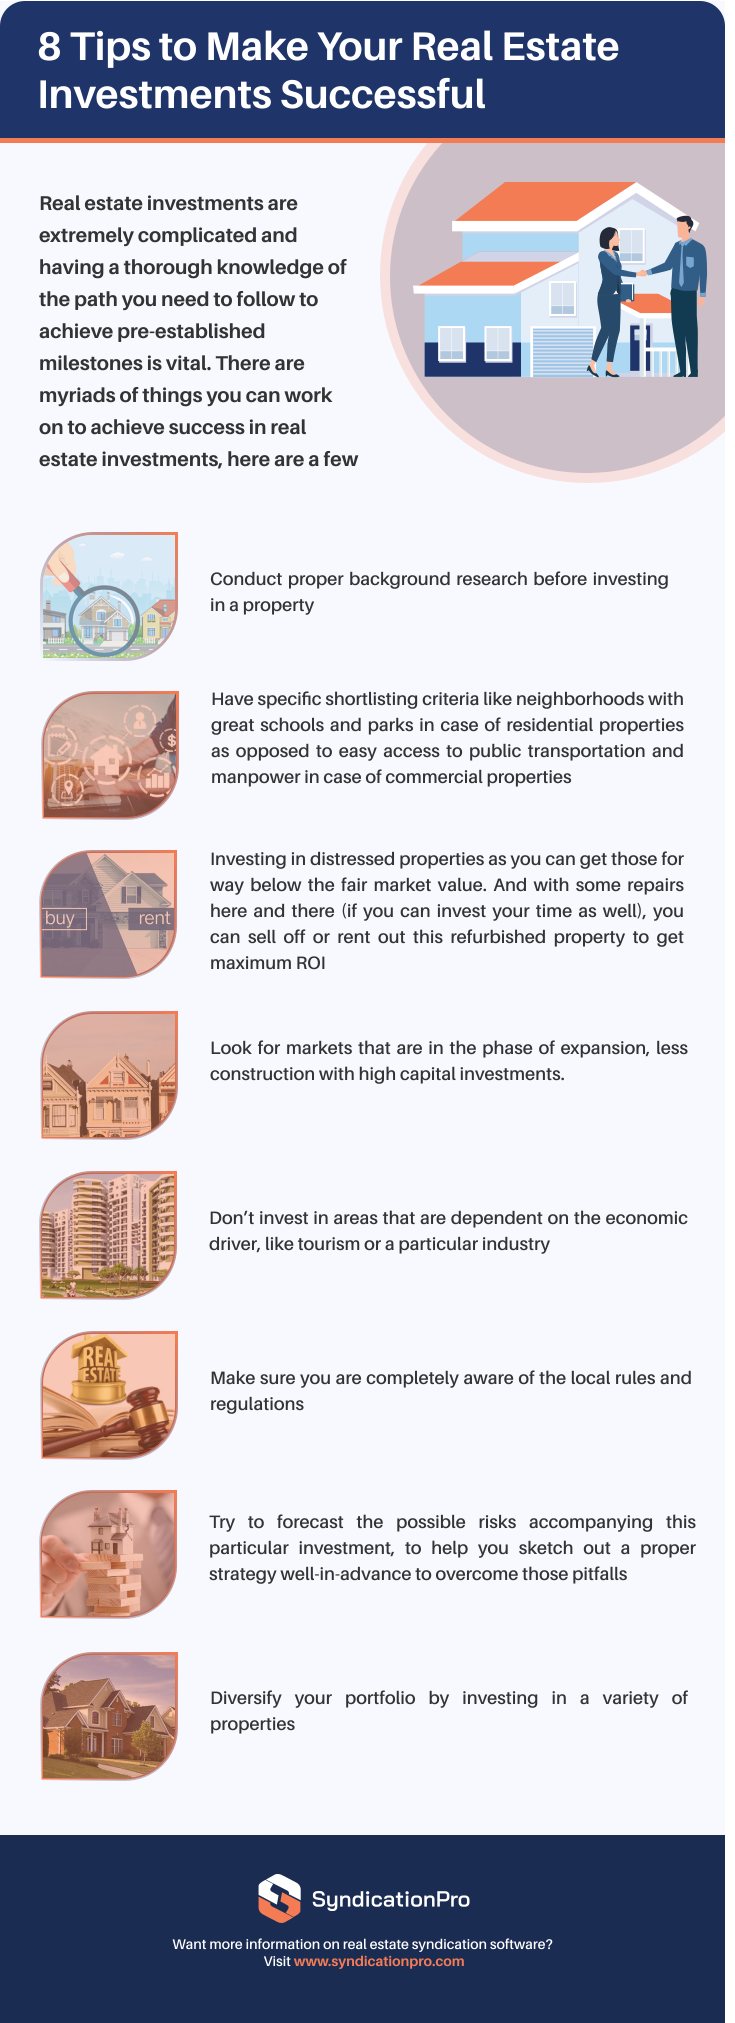 8 Tips to Make Your Real Estate Investments Successful - Infographic